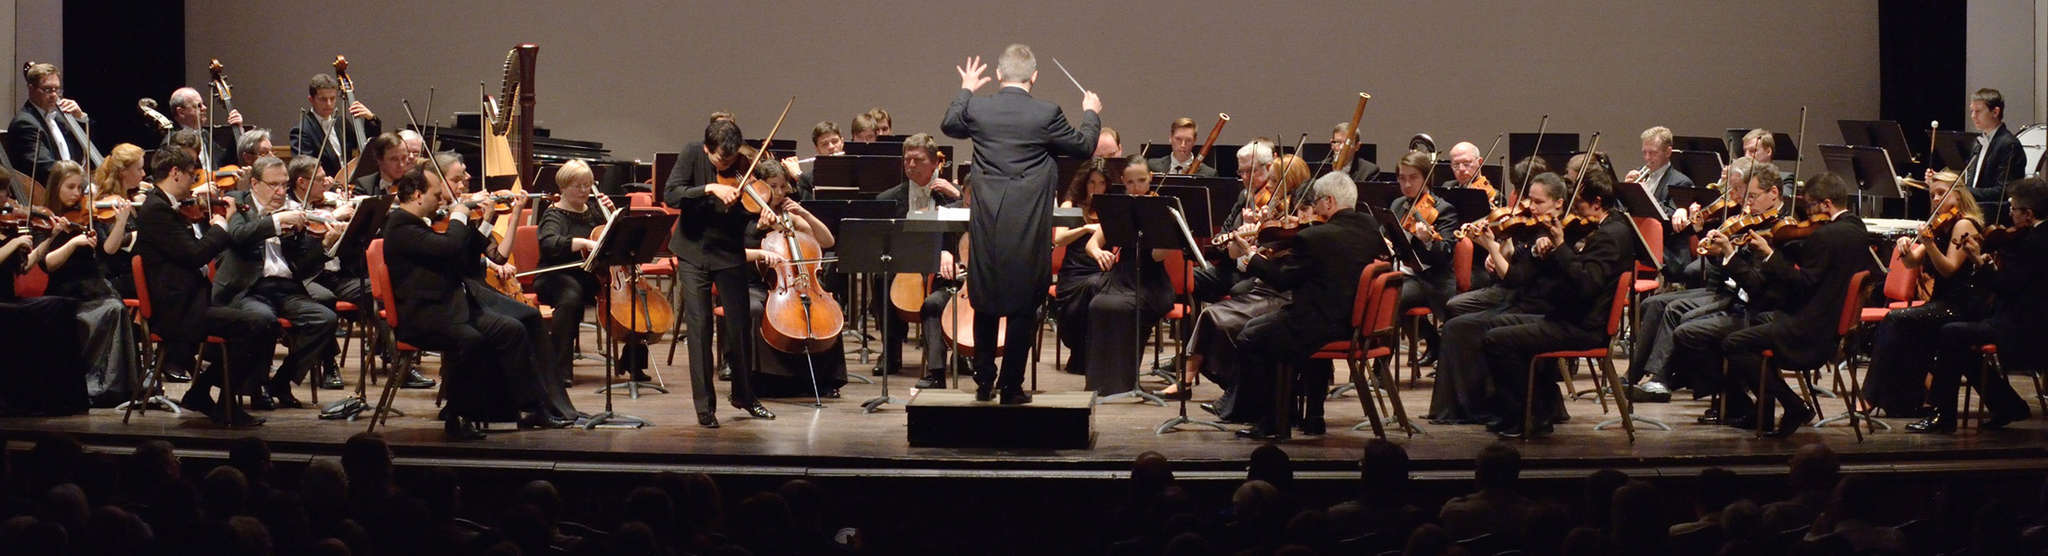 The Russian National Orchestra, with conductor Kirill Karabits, on Friday at the Grand Opera House.